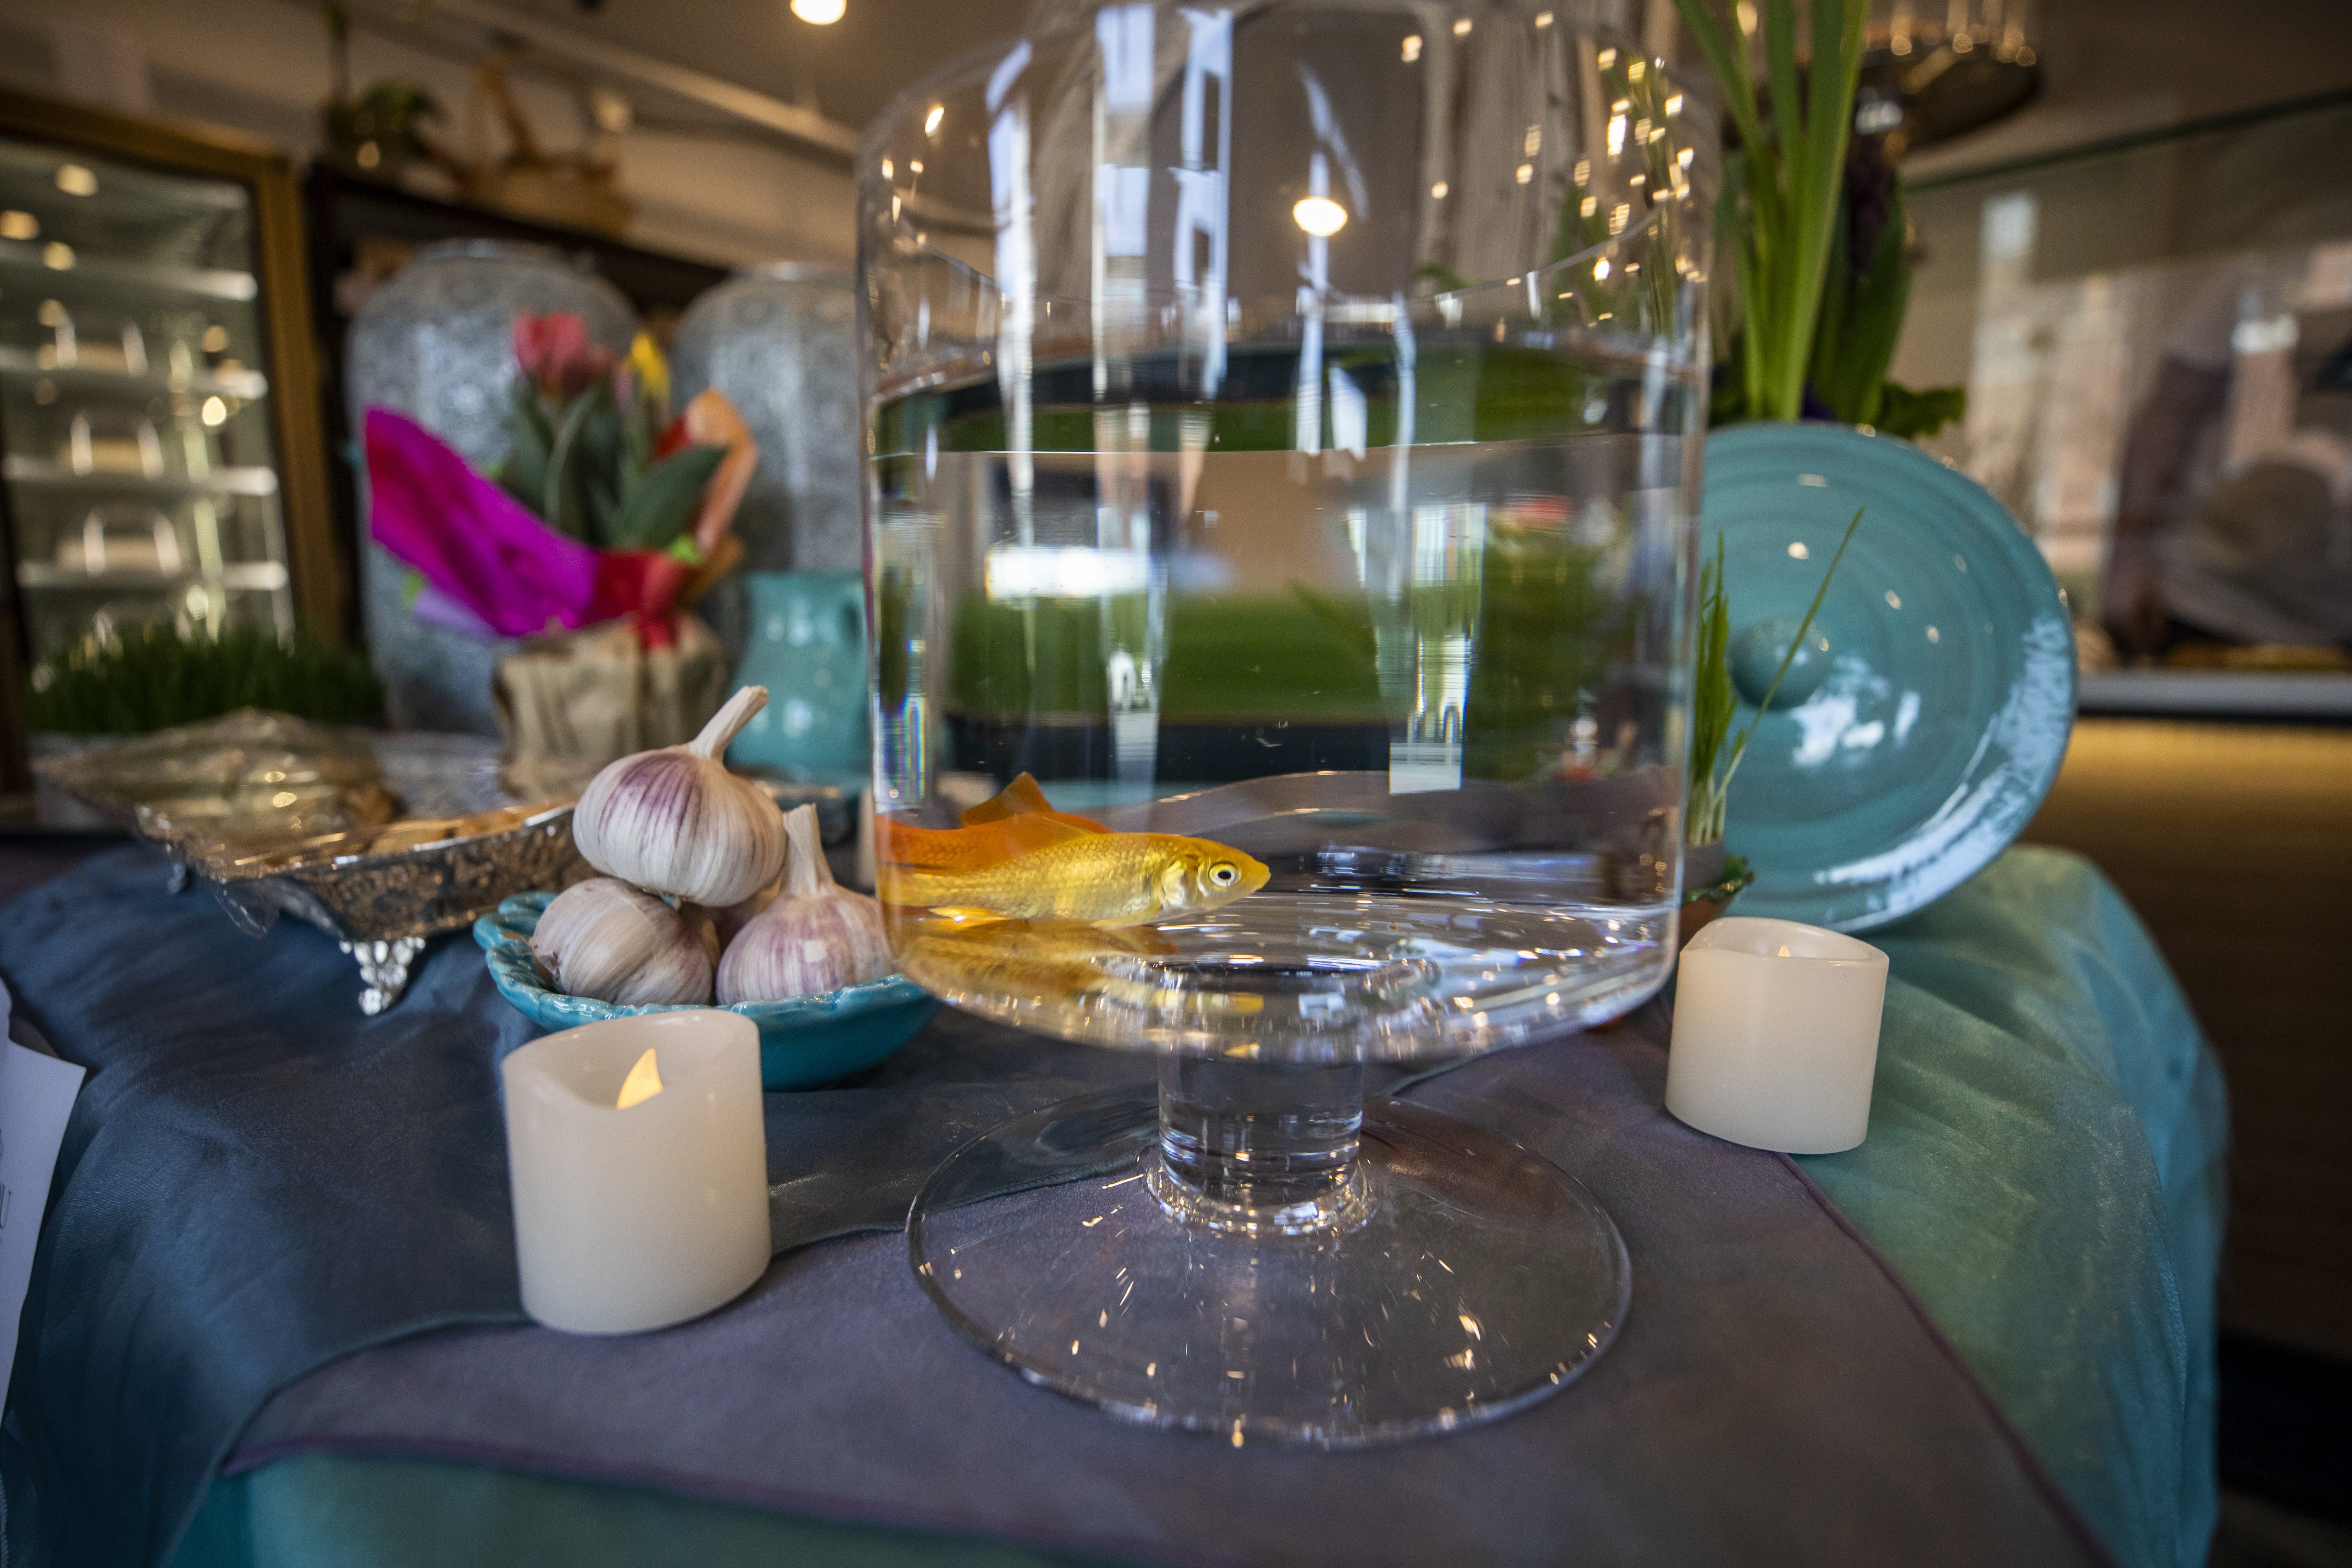 The tradition of including goldfish on the haft-sin table for good luck dates back to the 16th and 17th centuries. (Ben Nelms/CBC)